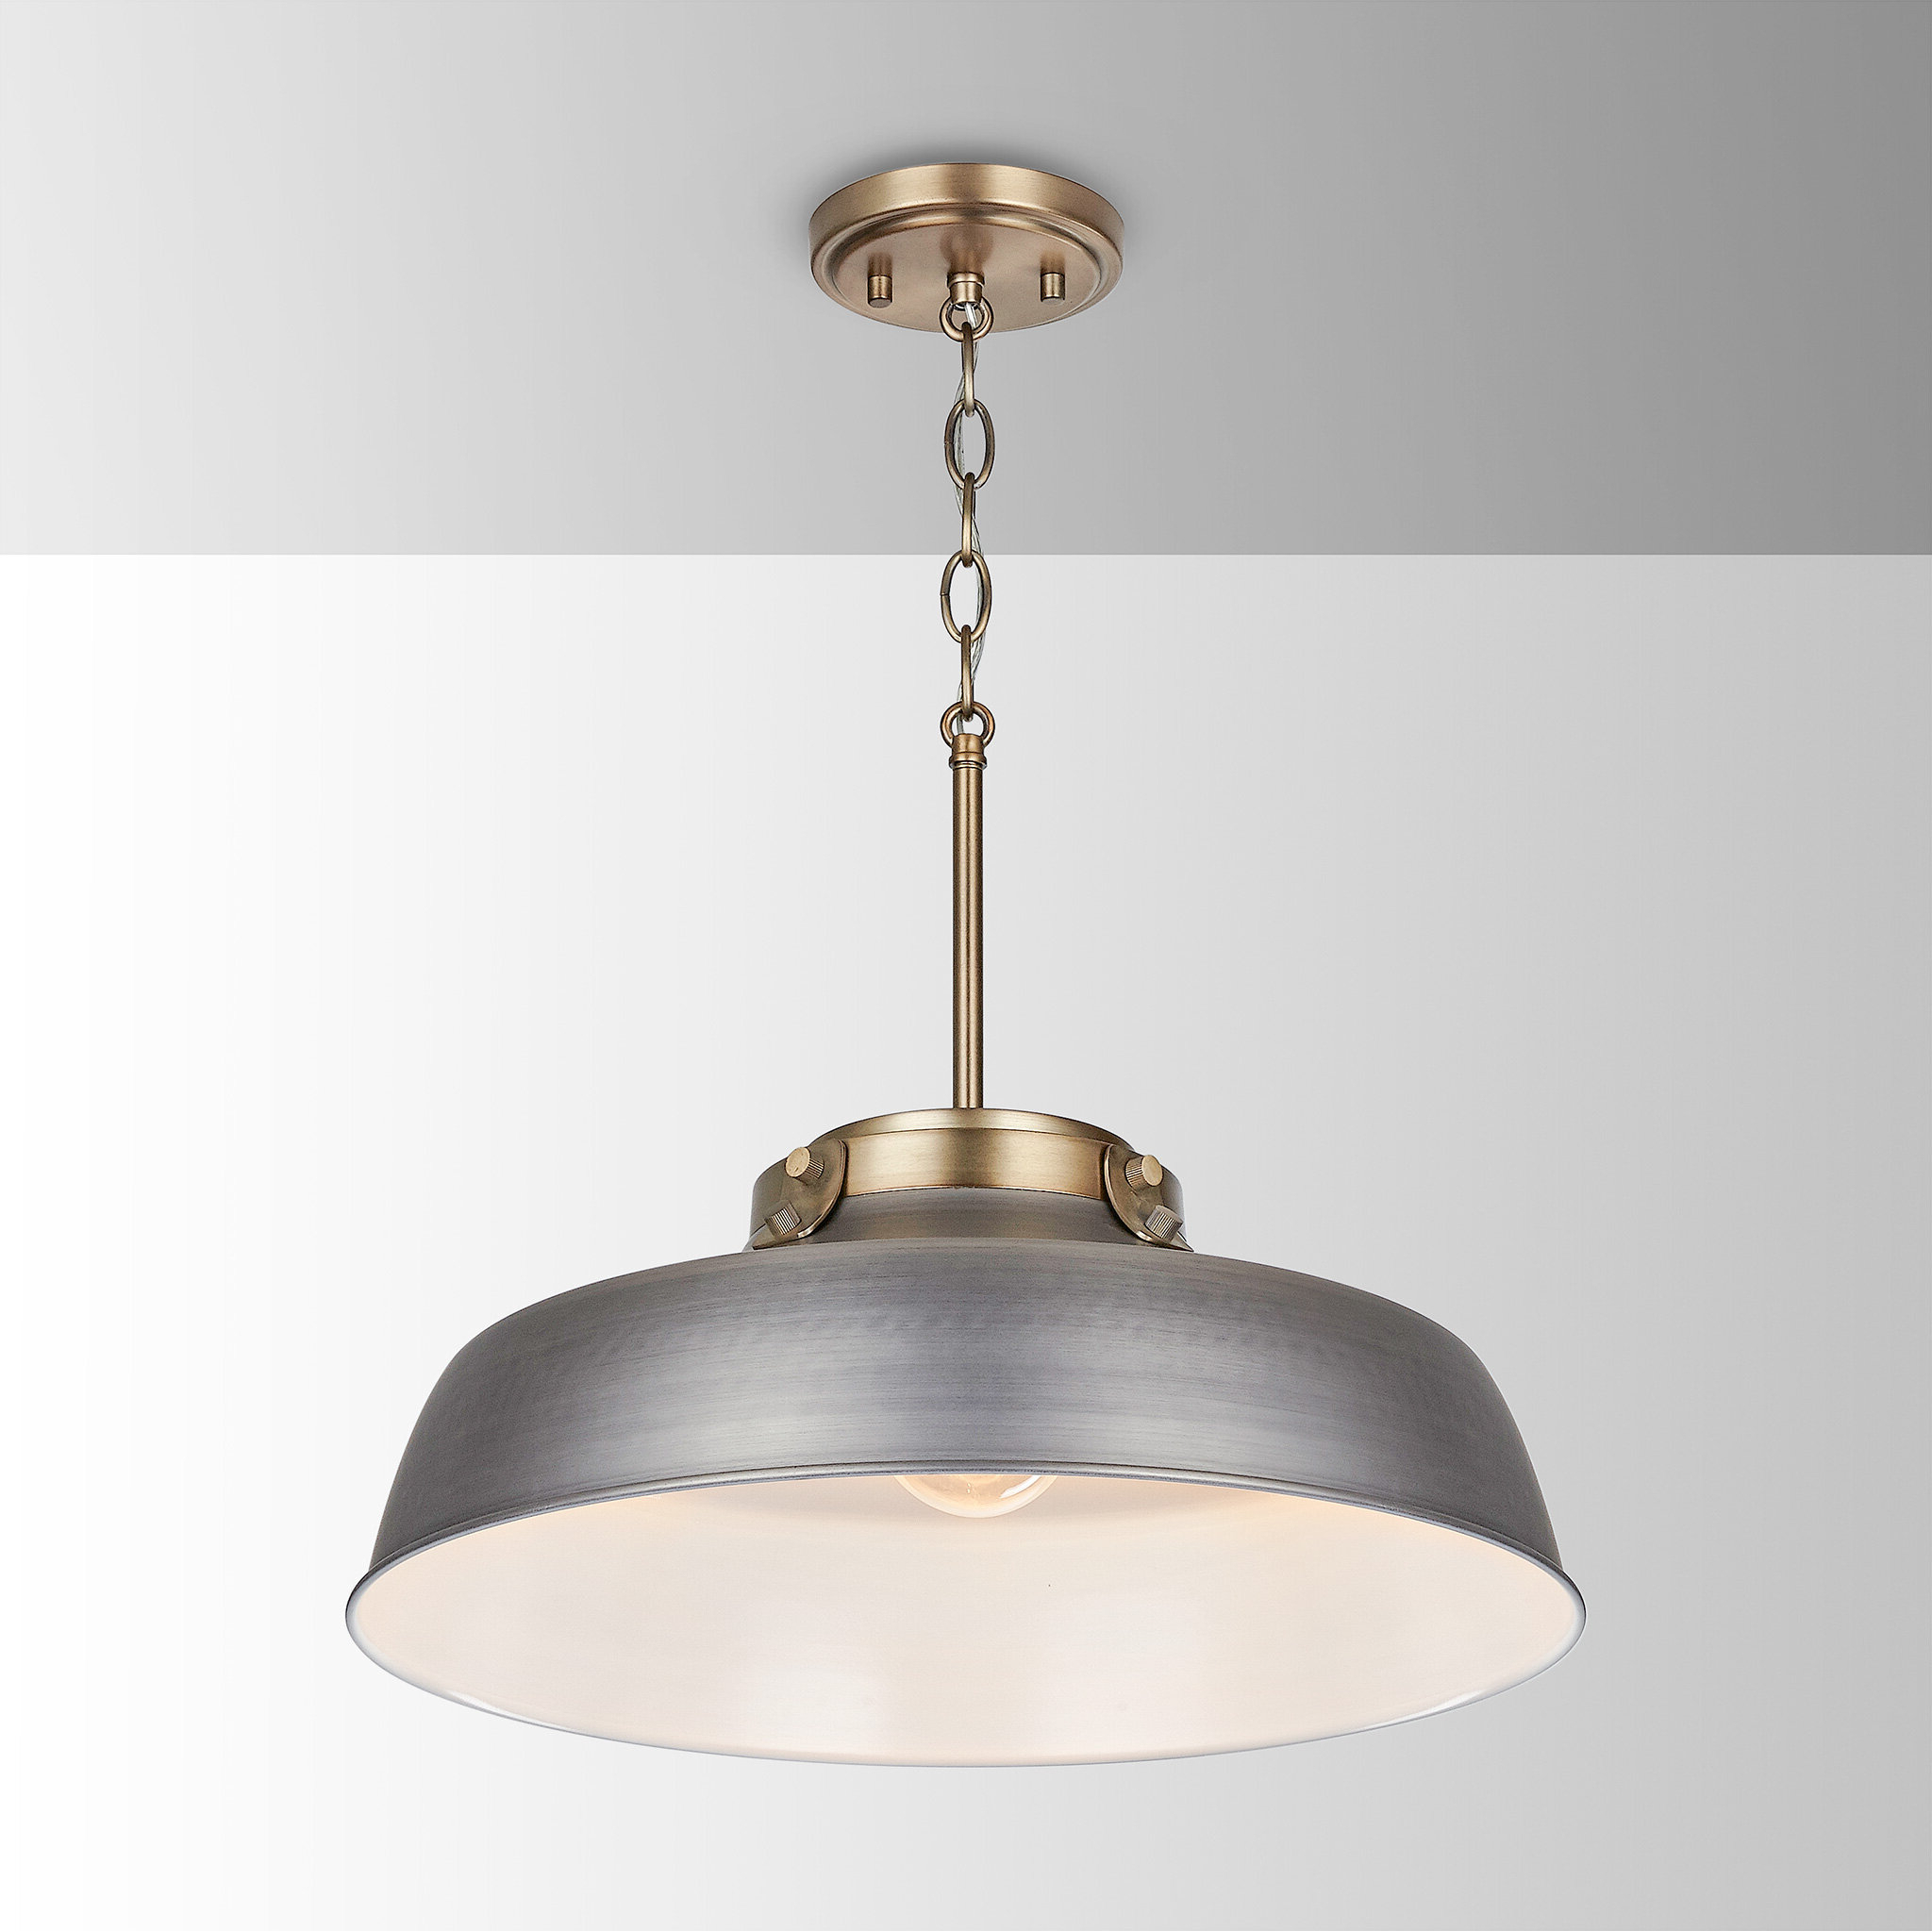 1 Light Dome Pendant Regarding Best And Newest Conover 1 Light Dome Pendants (Gallery 7 of 20)